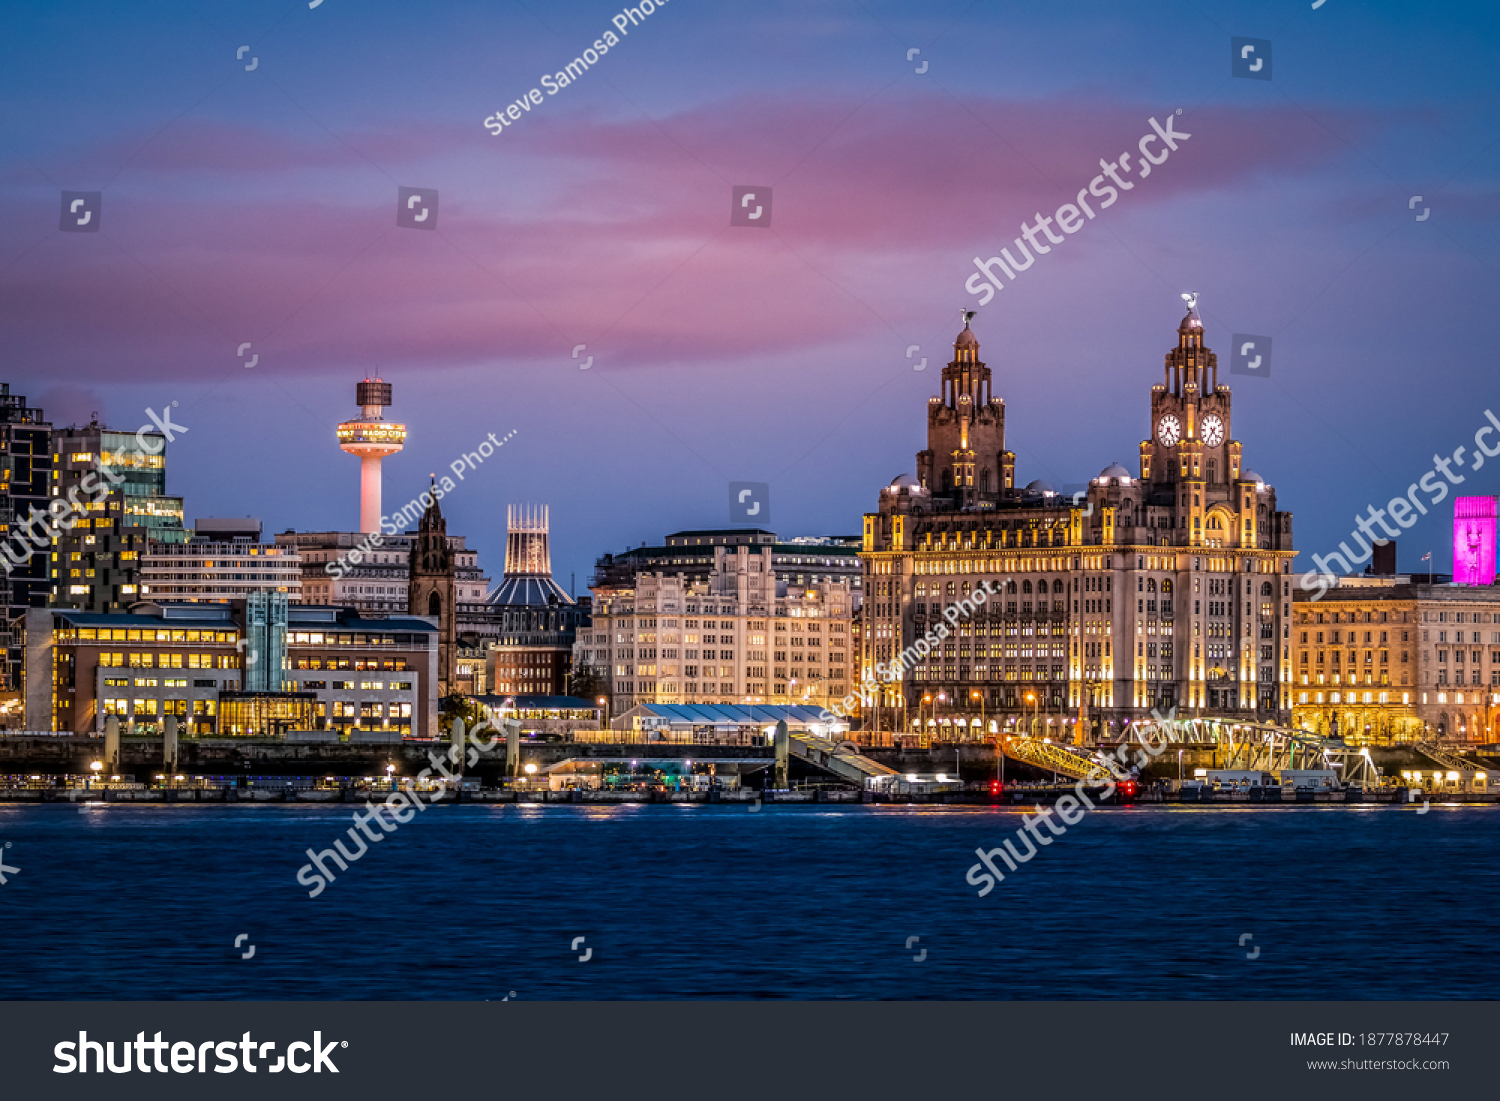 Liverpool waterfront illuminated at dusk